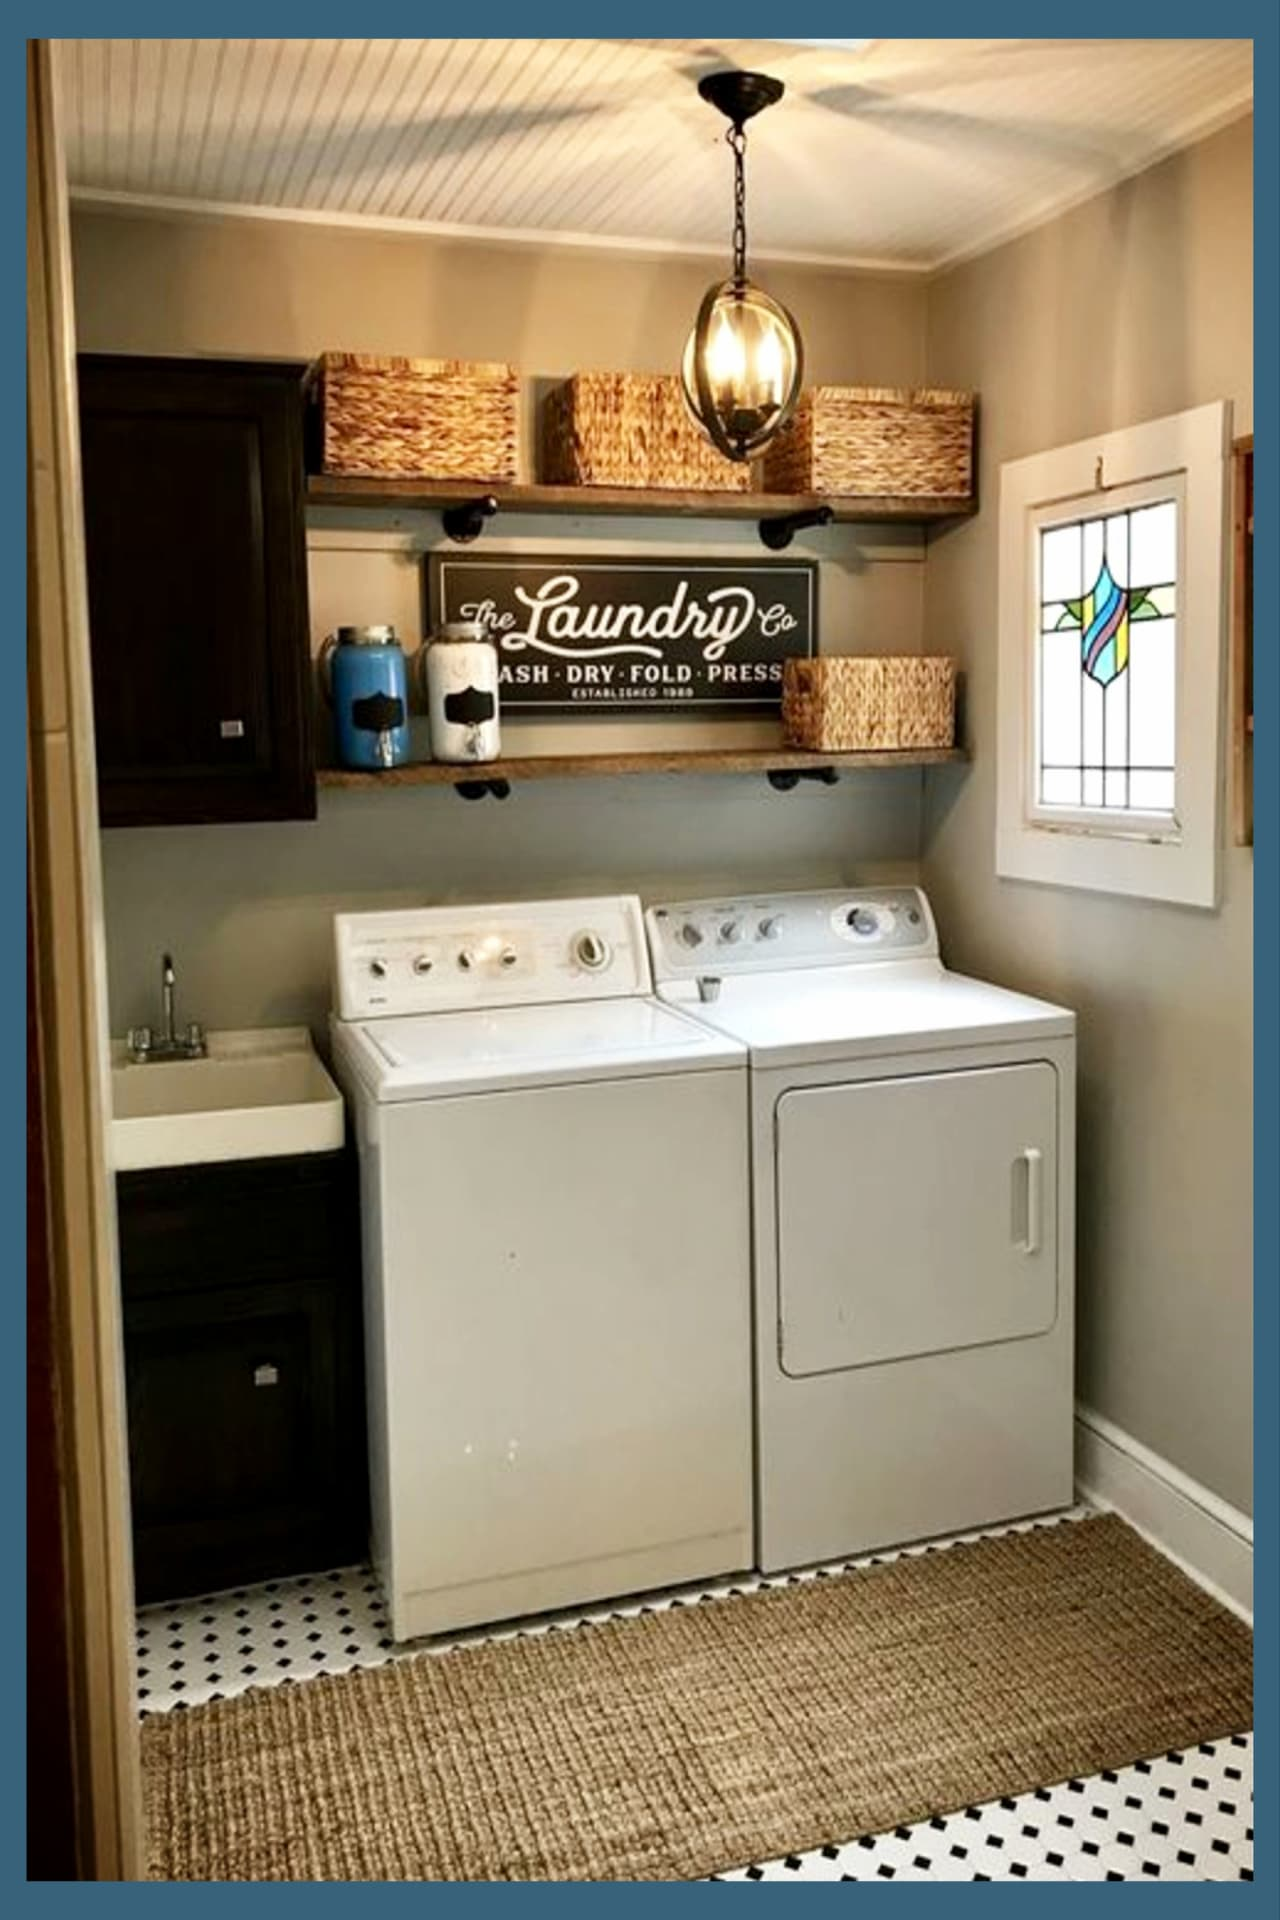 Today 2020 11 26 Small Space Storage Ideas In Laundry Room Best Ideas For Us